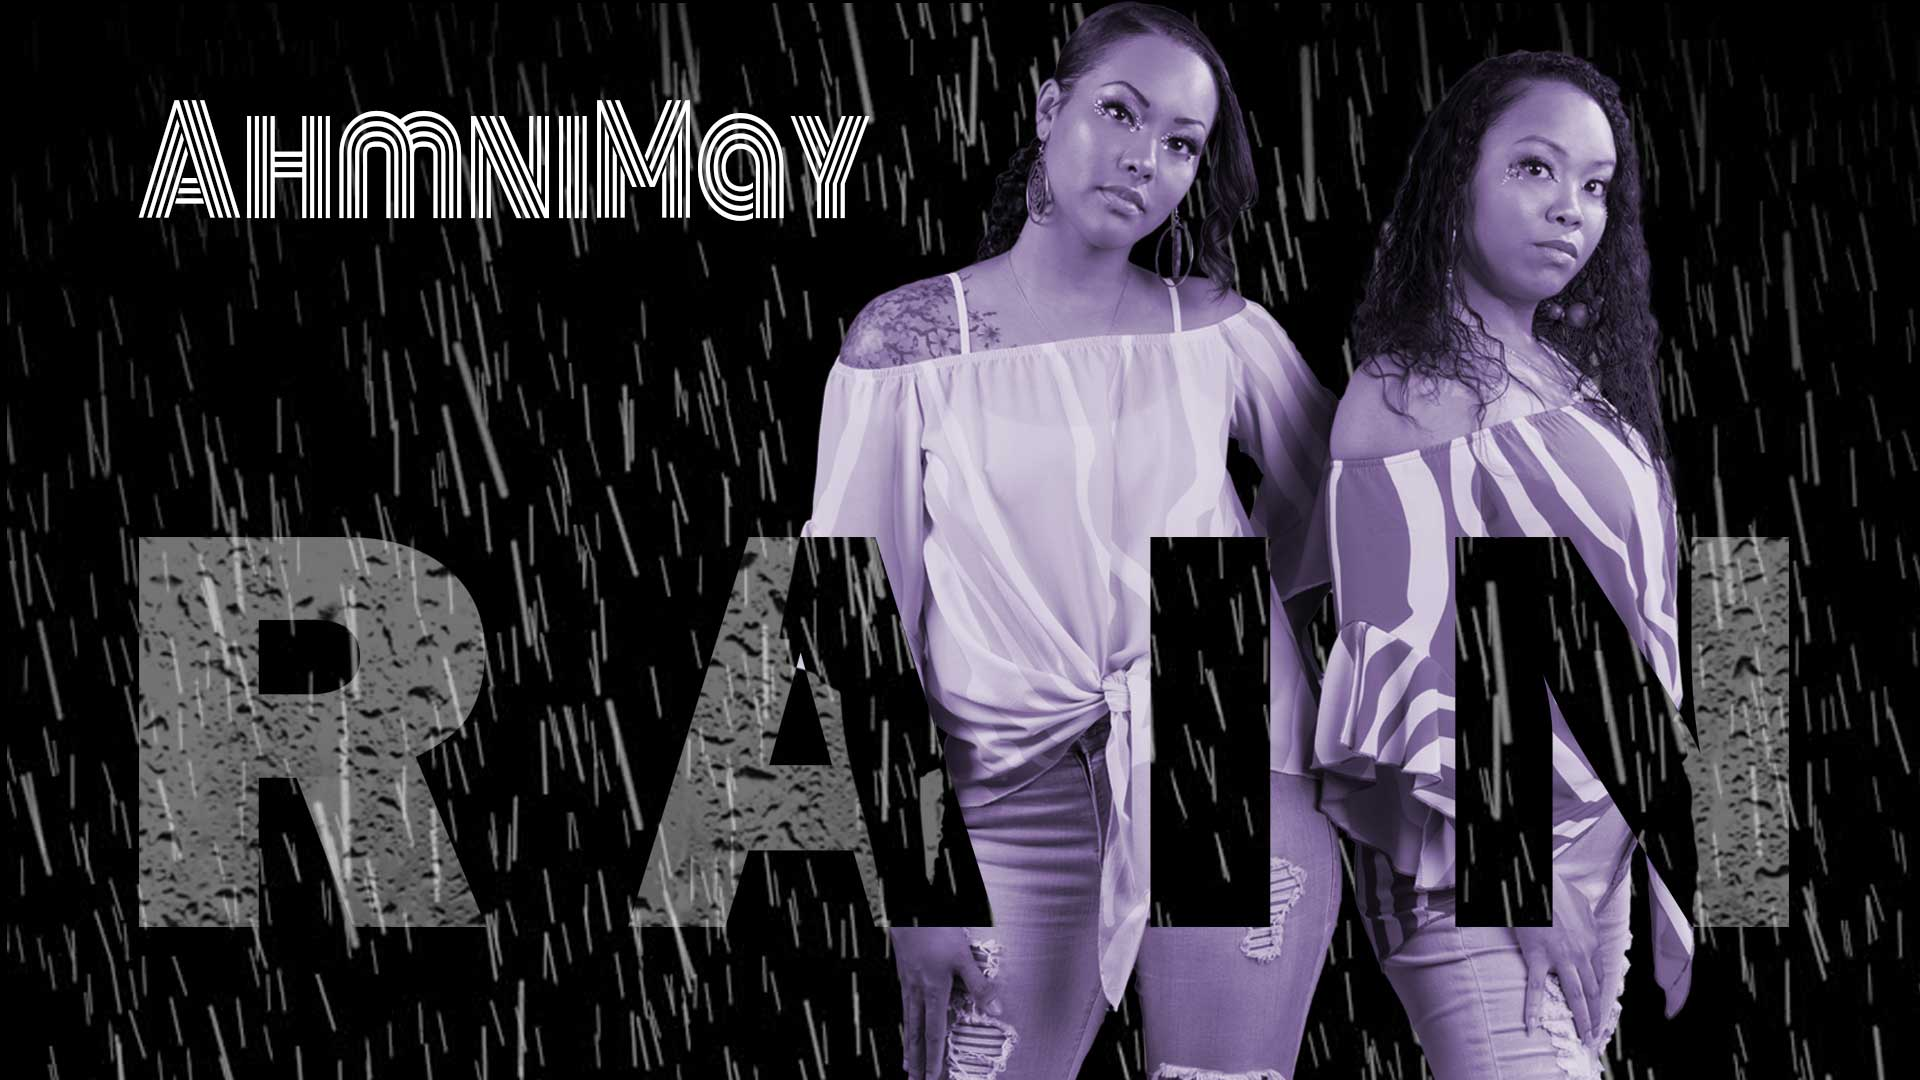 Music video for a sister duo singing their original song rain with accompanying keyboardist